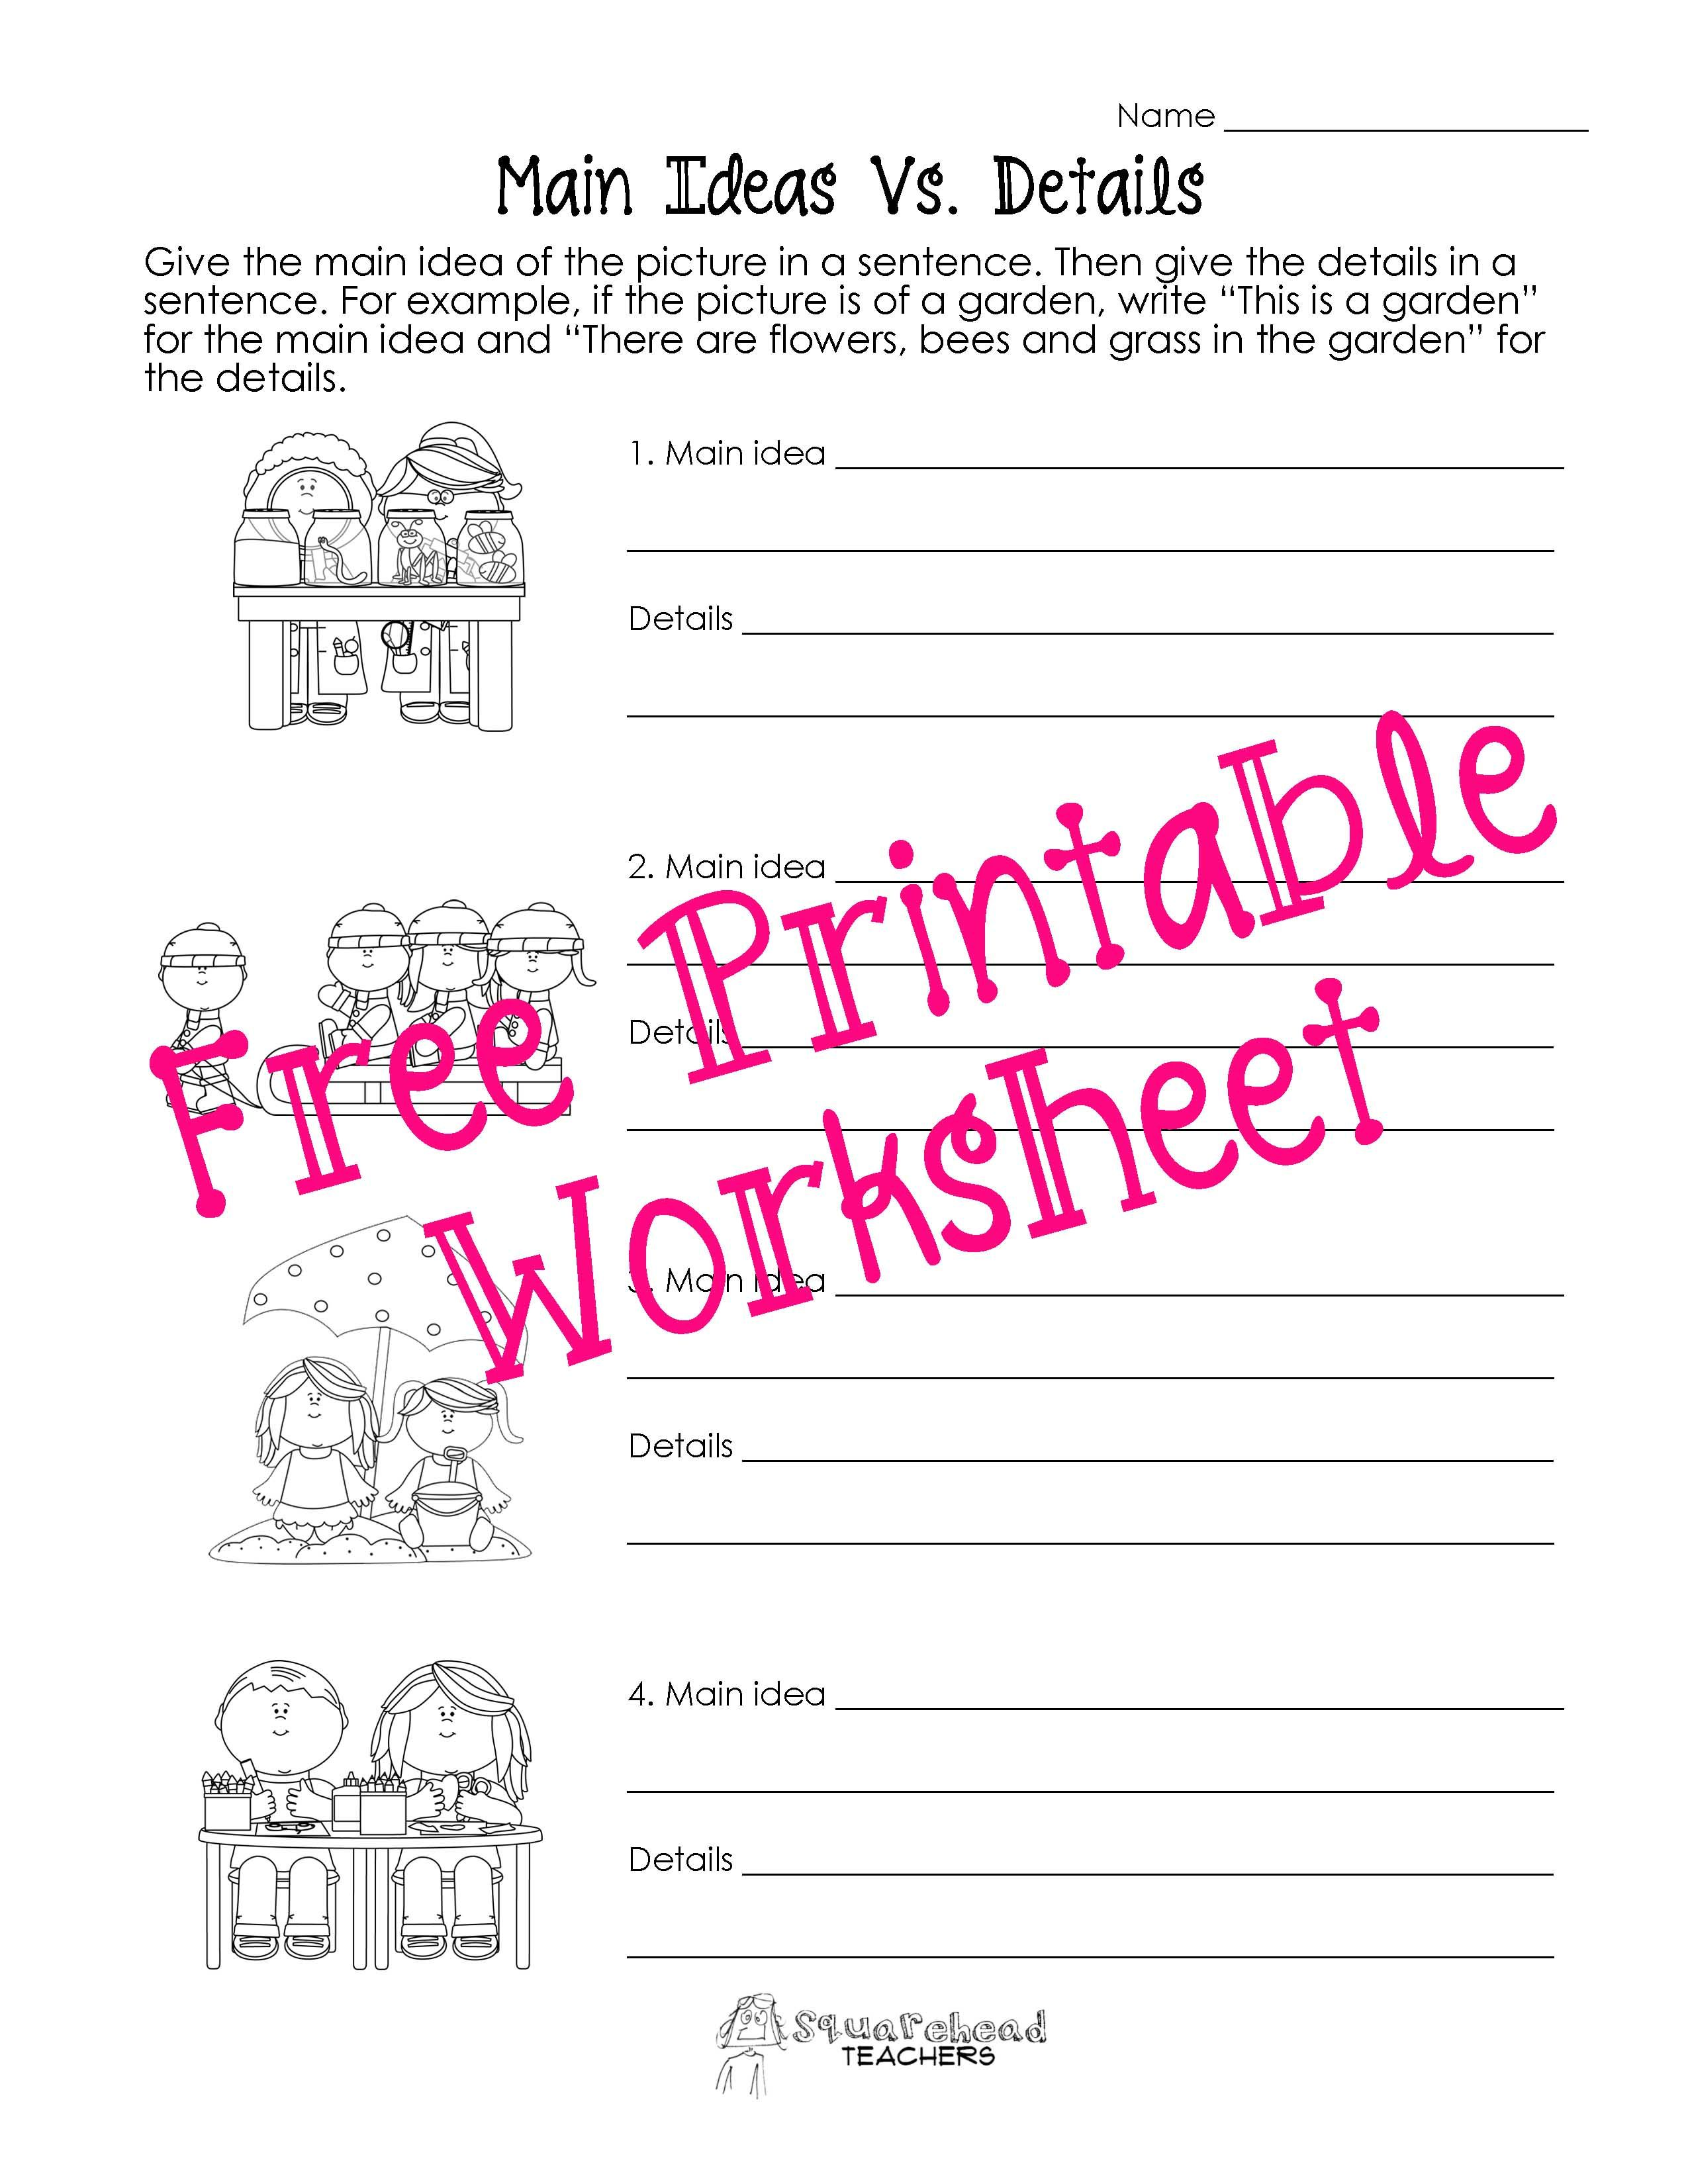 Worksheets Supporting Details Worksheet squarehead teachers main idea vs details worksheets genius teaching inspired by an